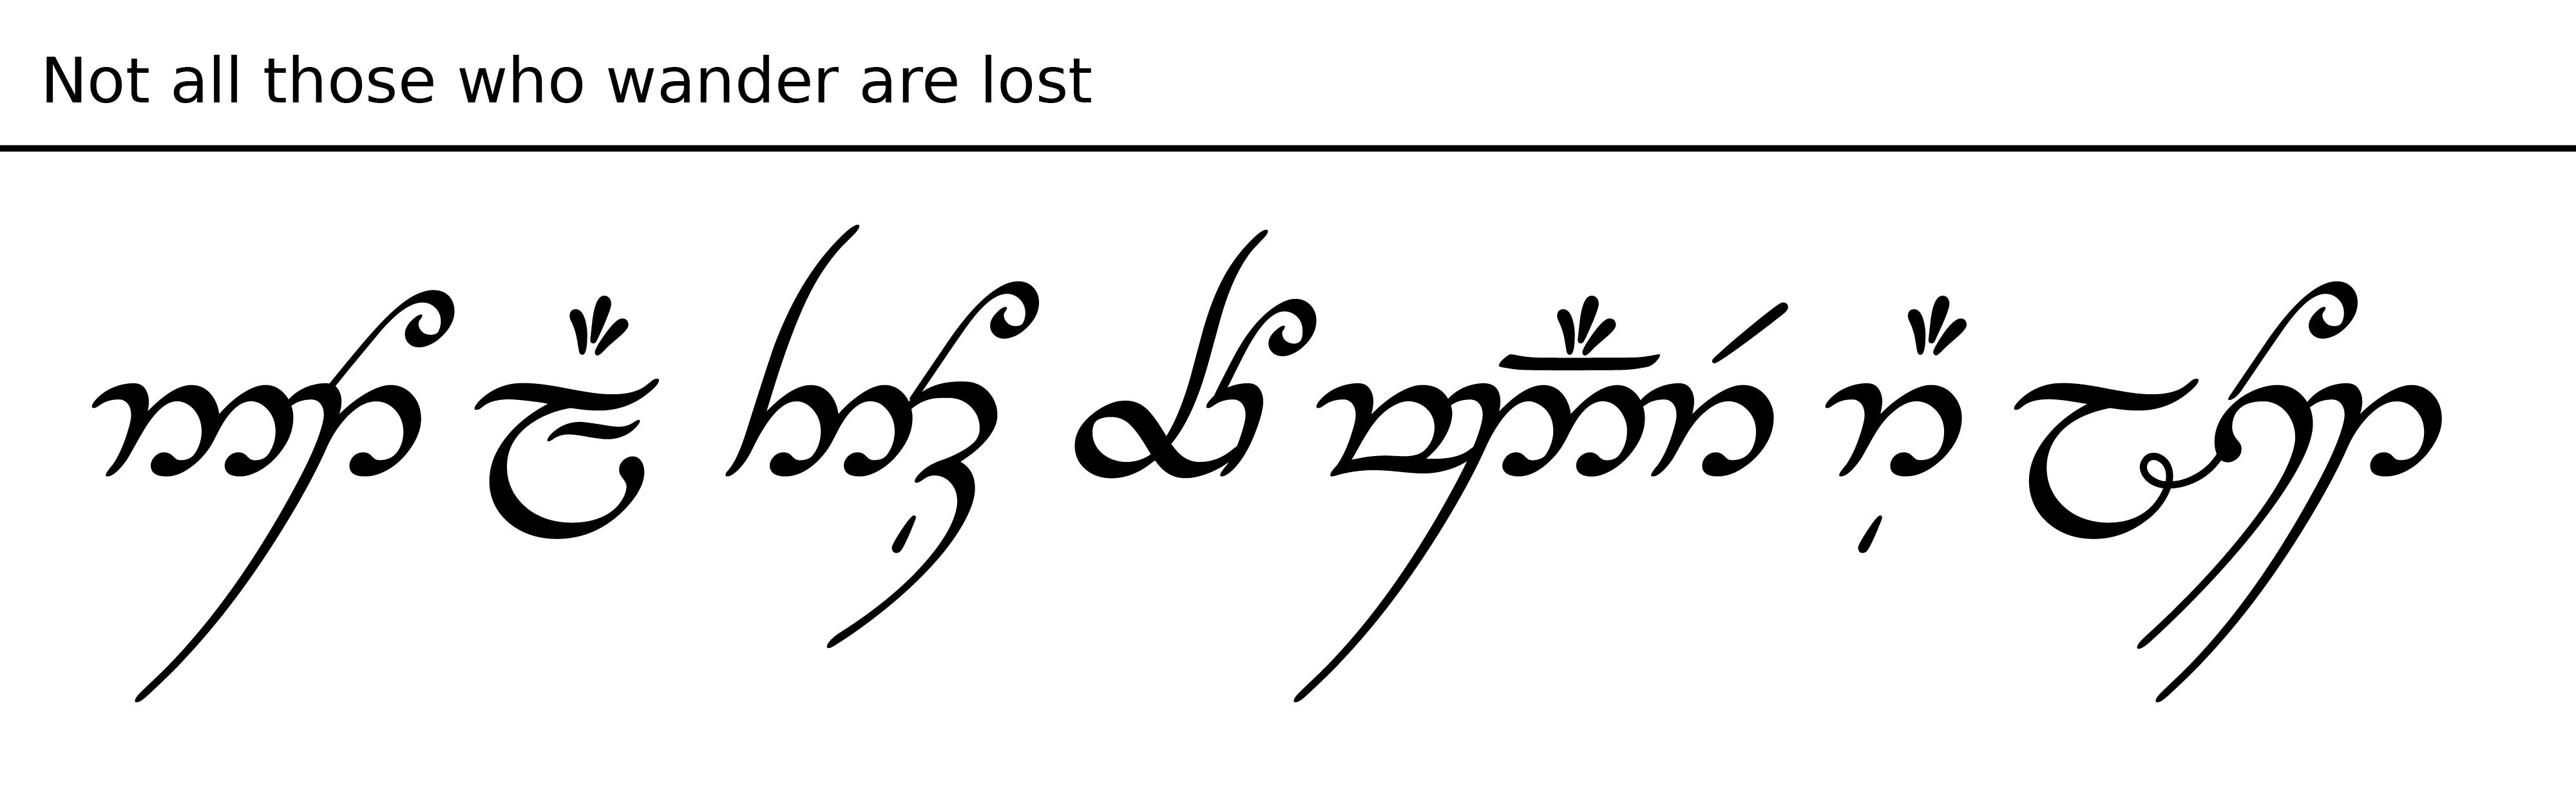 Not All Those Who Wander Are Lost In Tengwar So Beautiful My Original Plan Was To Have This Phrase Tattooed On My Word Tattoos Elvish Tattoo Tattoo Fonts